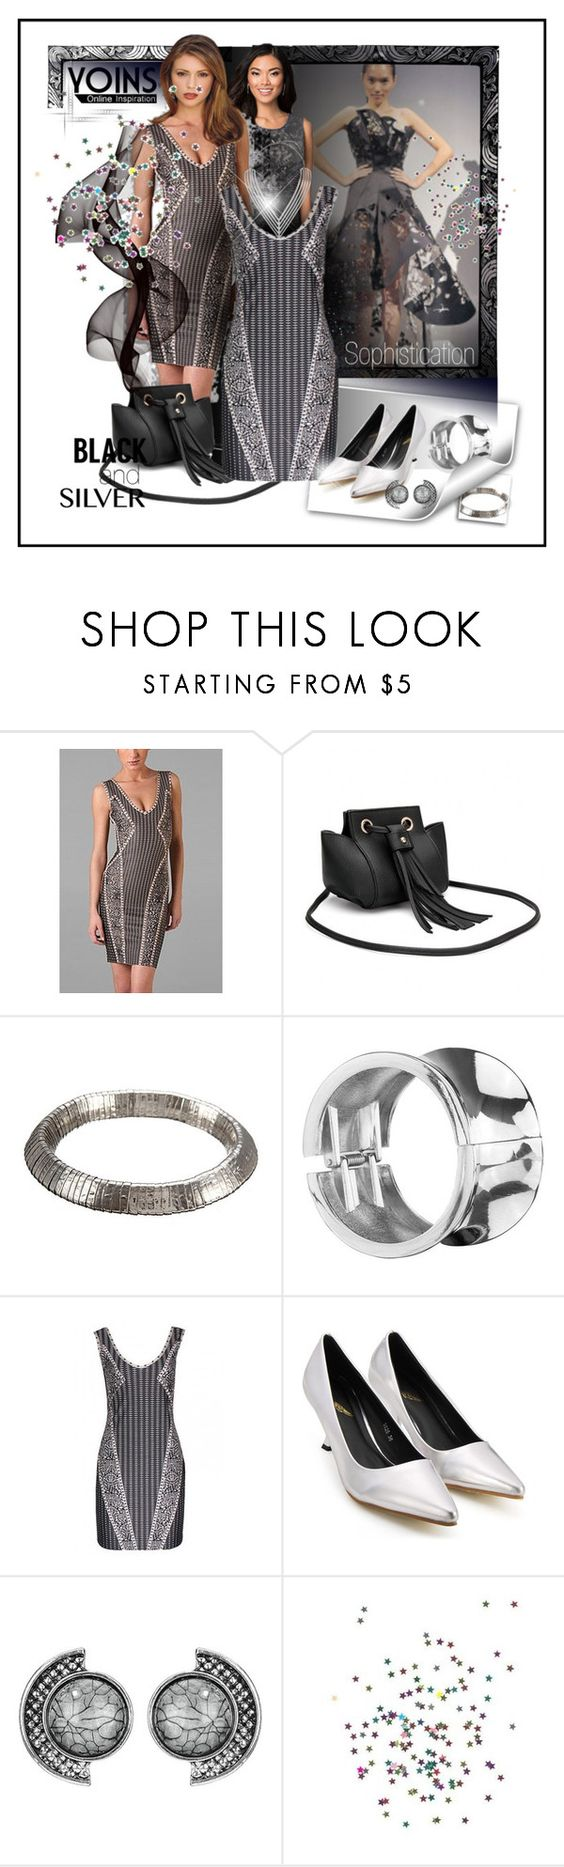 """Sophistication"" by ul-inn ❤ liked on Polyvore featuring Topshop and yoins"